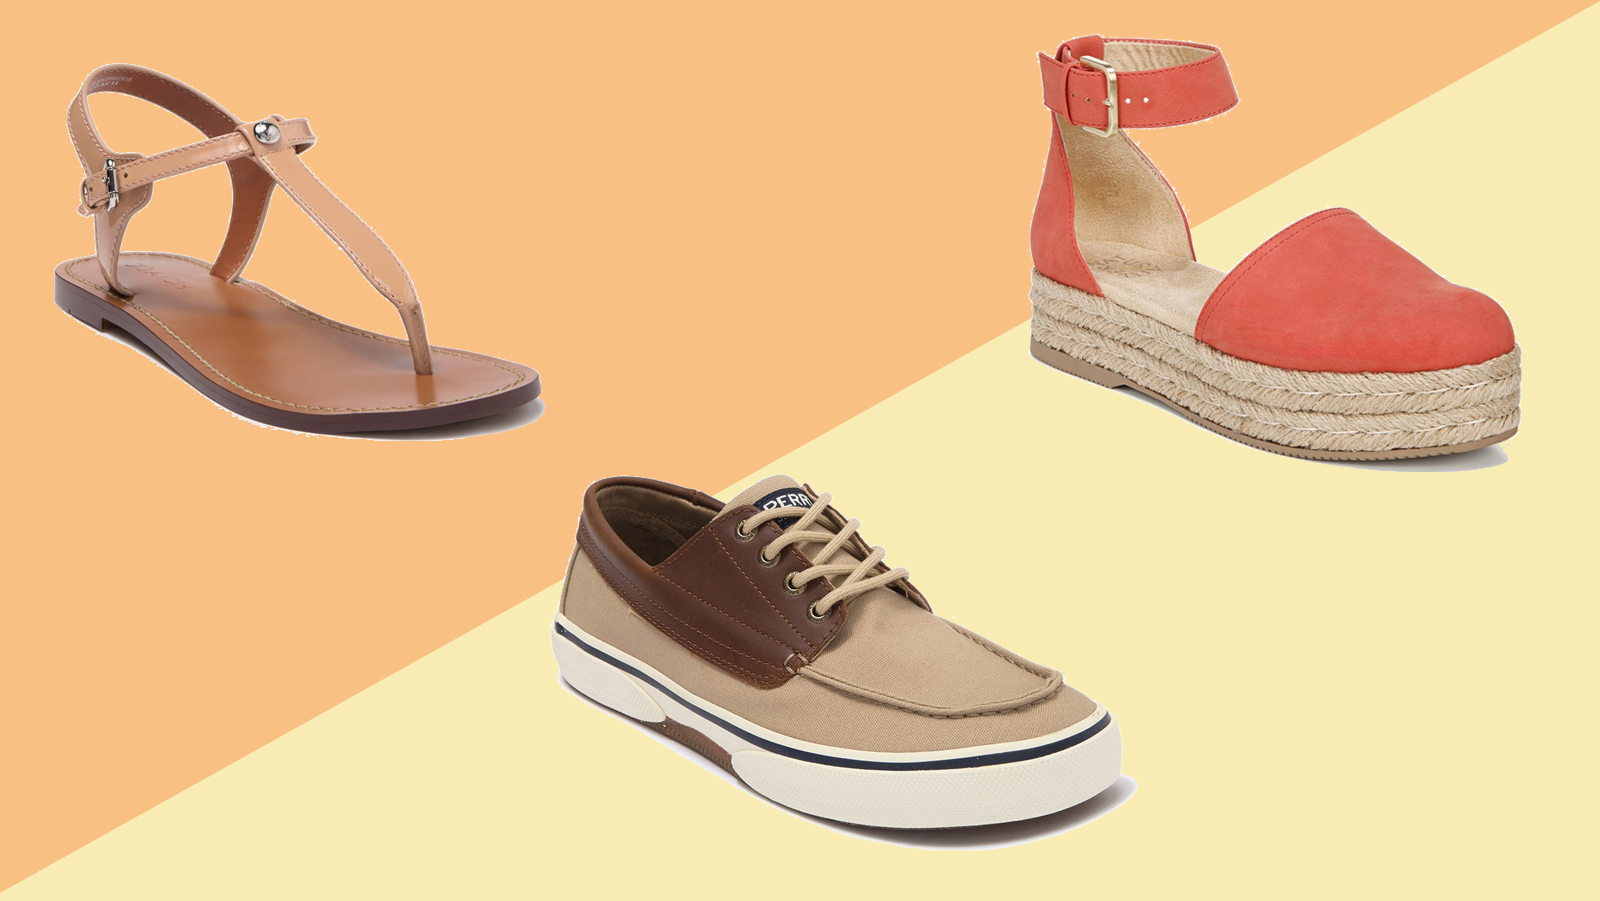 Nordstrom Rack sale: Take an extra 25